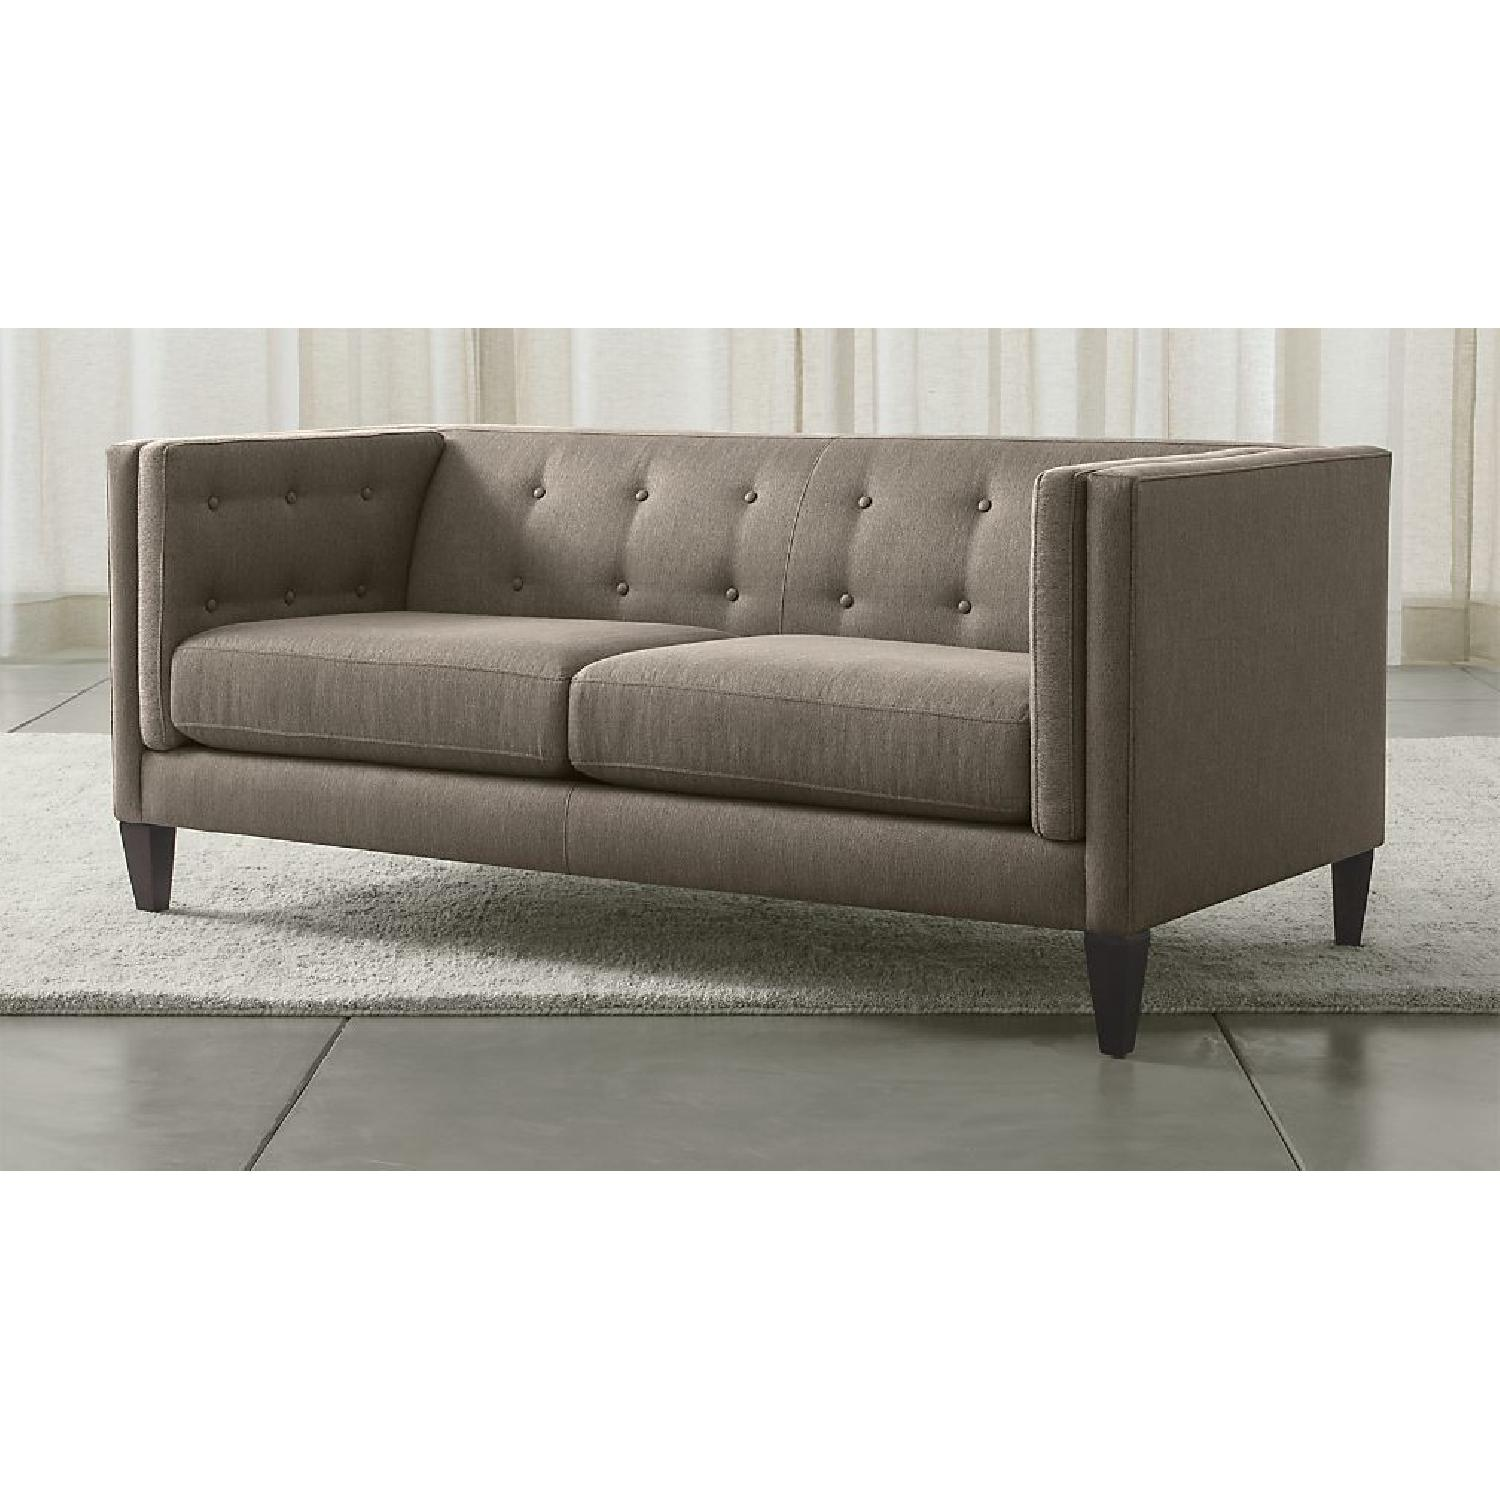 Crate & Barrel Aidan Apartment Sofa-0